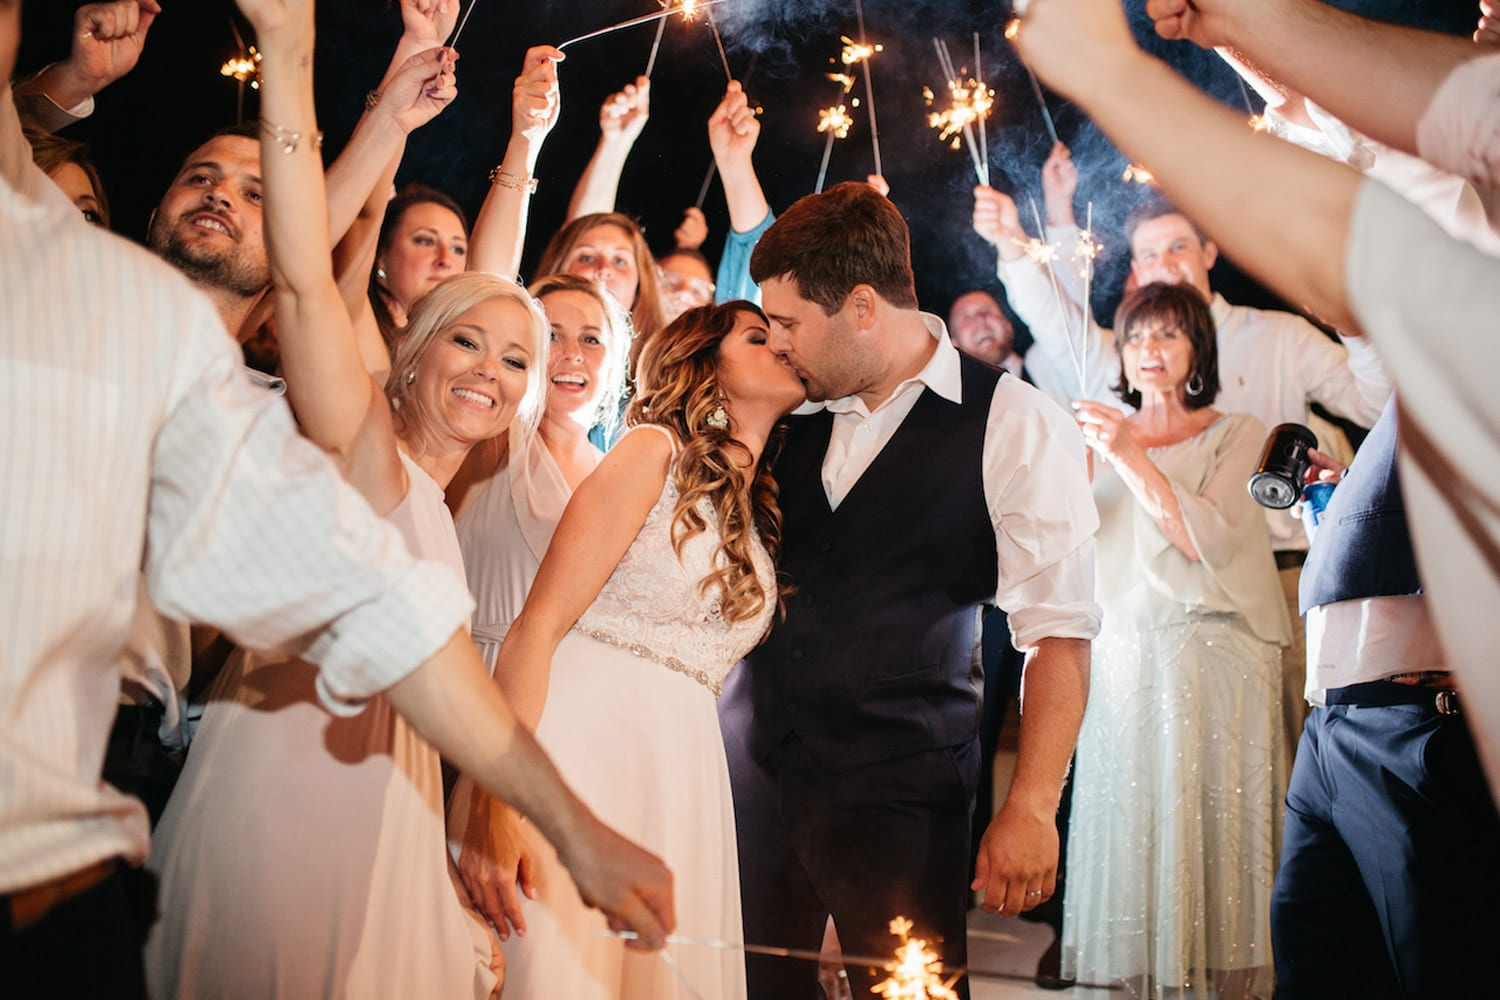 Bride and groom kiss during send-off